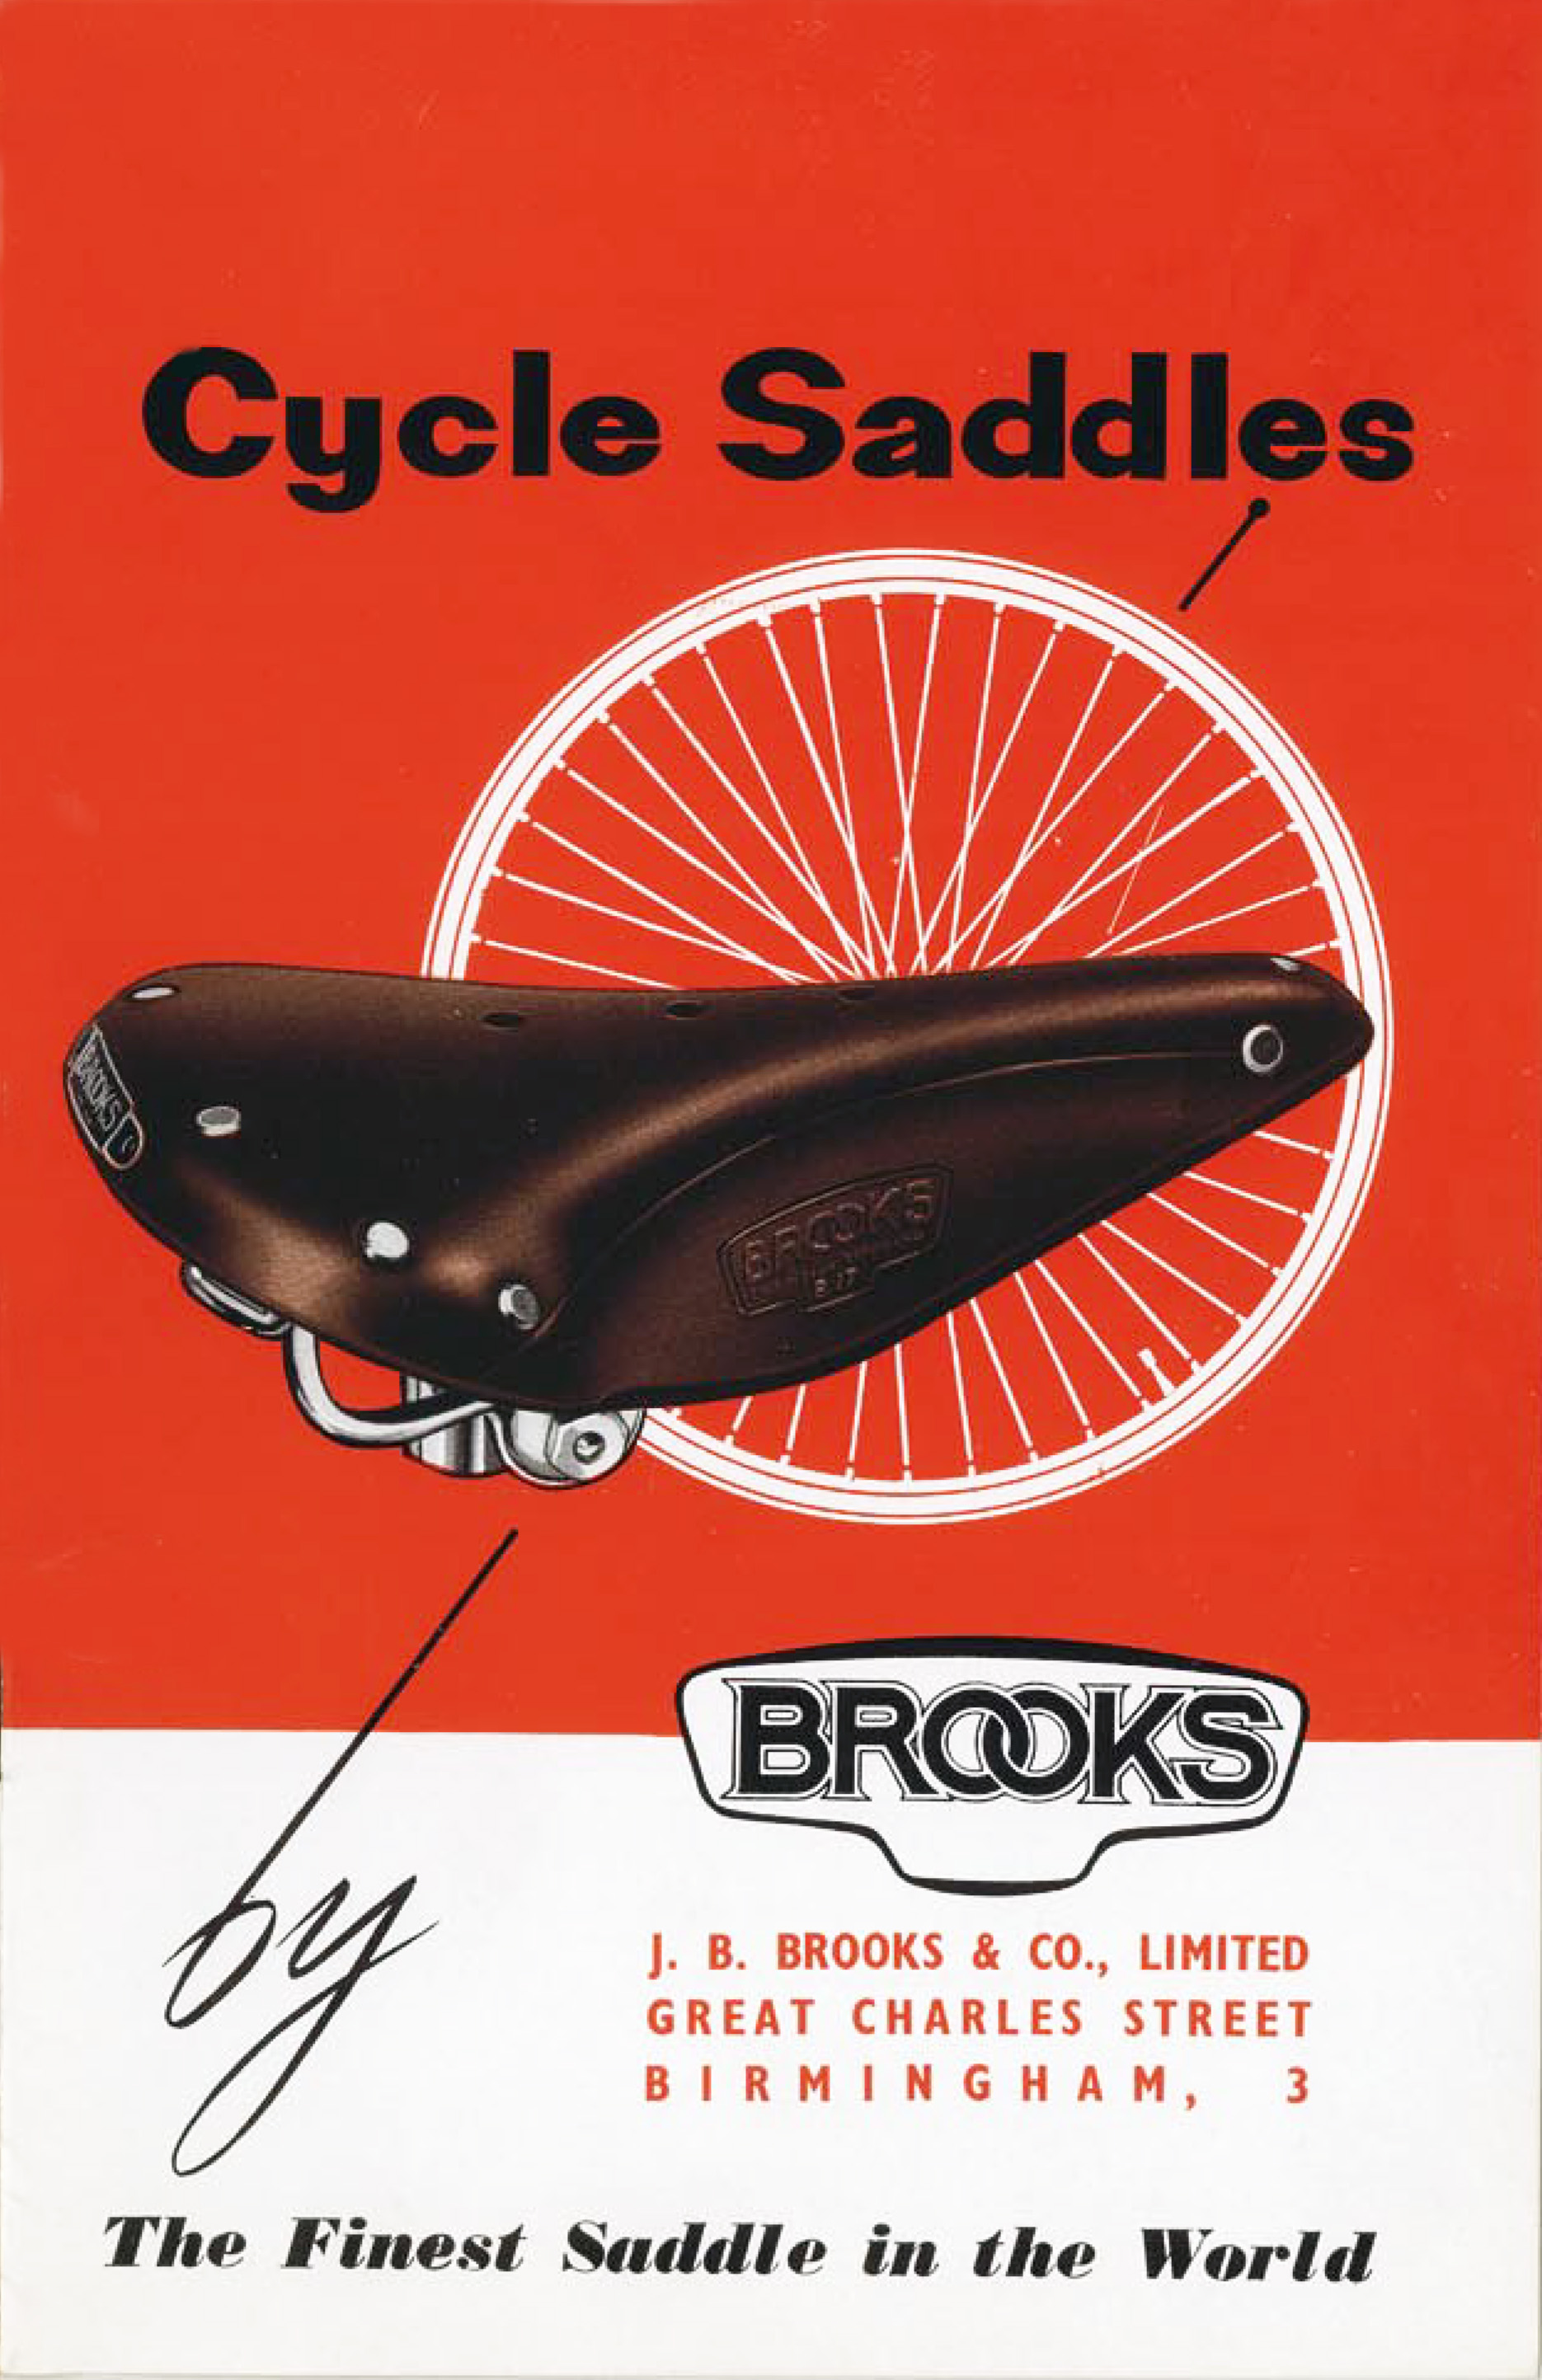 ebykr-brooks-1957-catalog-cover